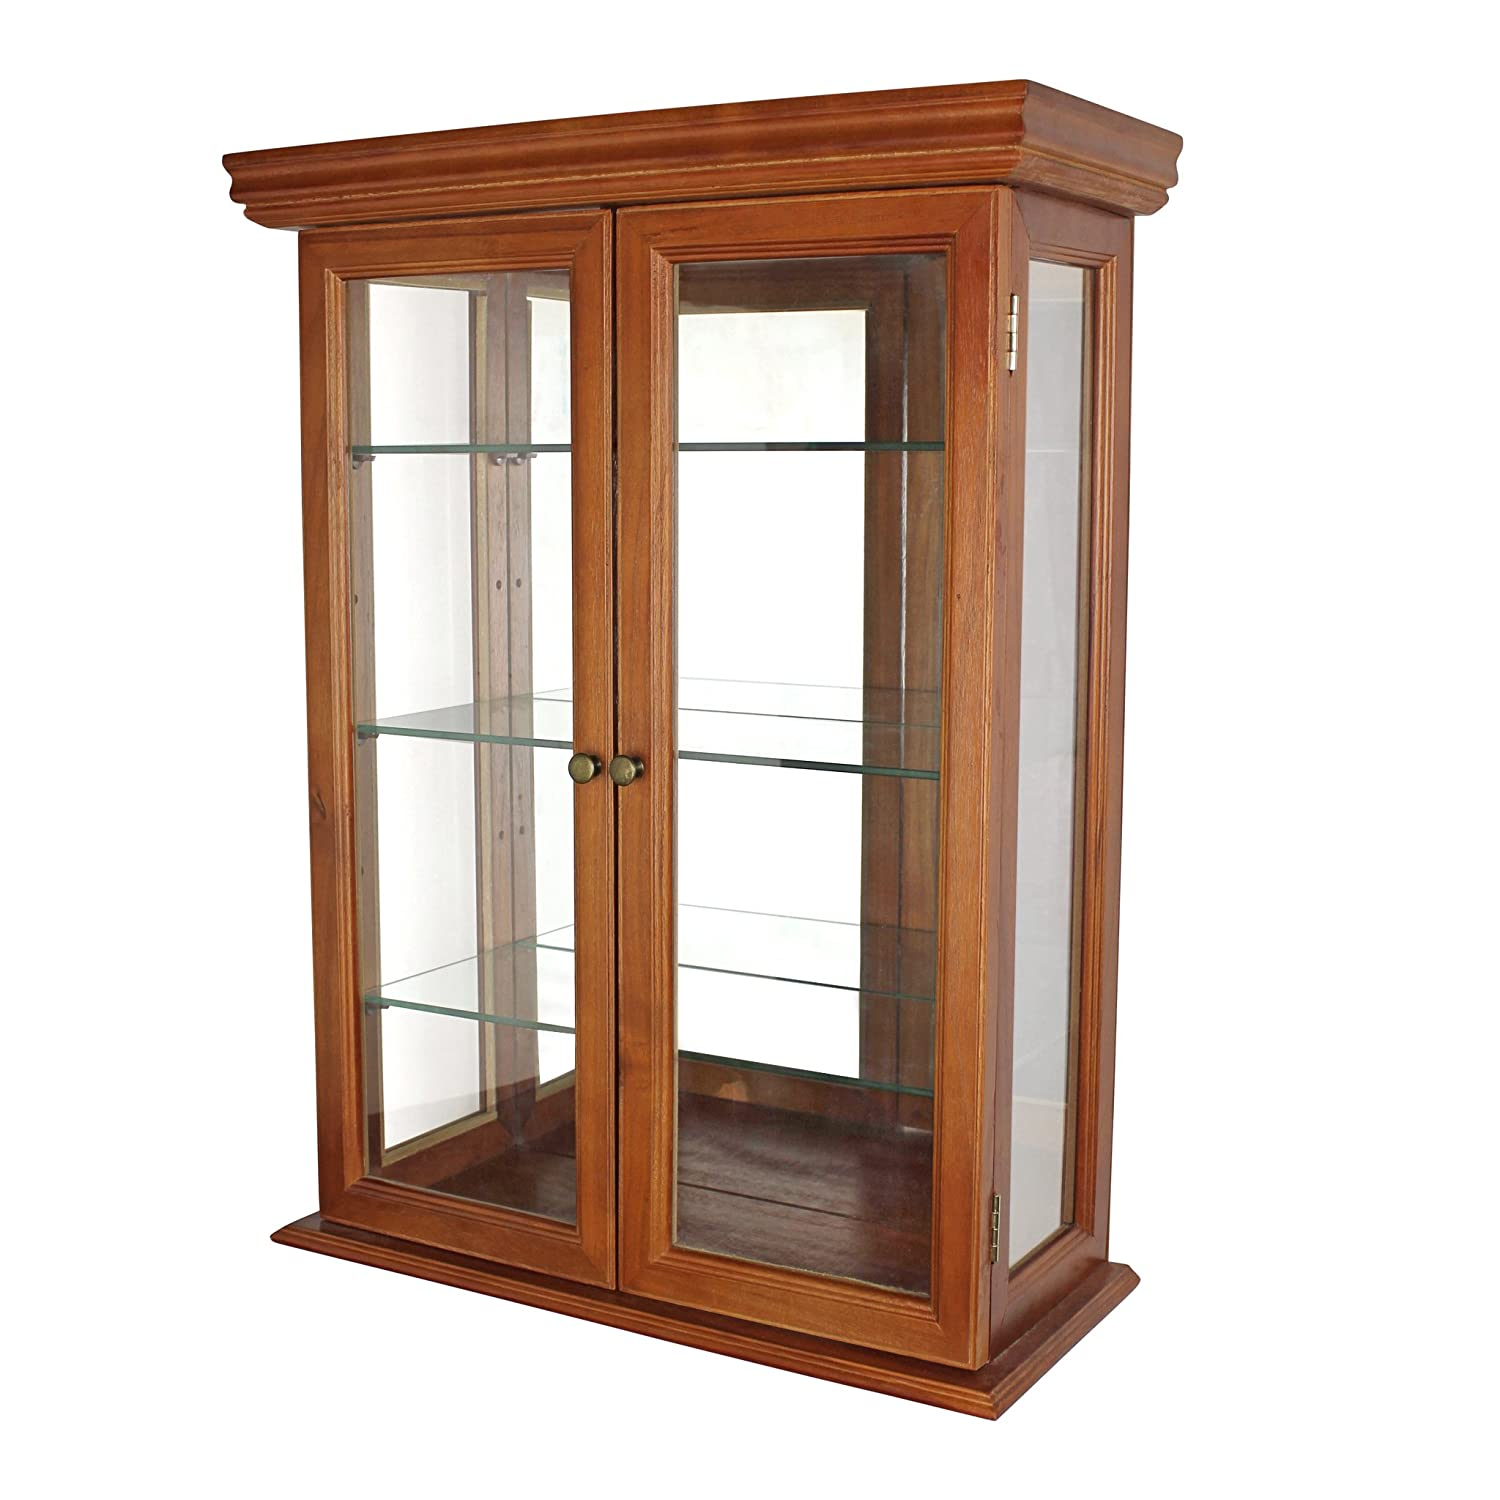 wall curio cabinet target cabinets matttroy lighted corner curio cabinet cherry lighted corner curio cabinet cherry